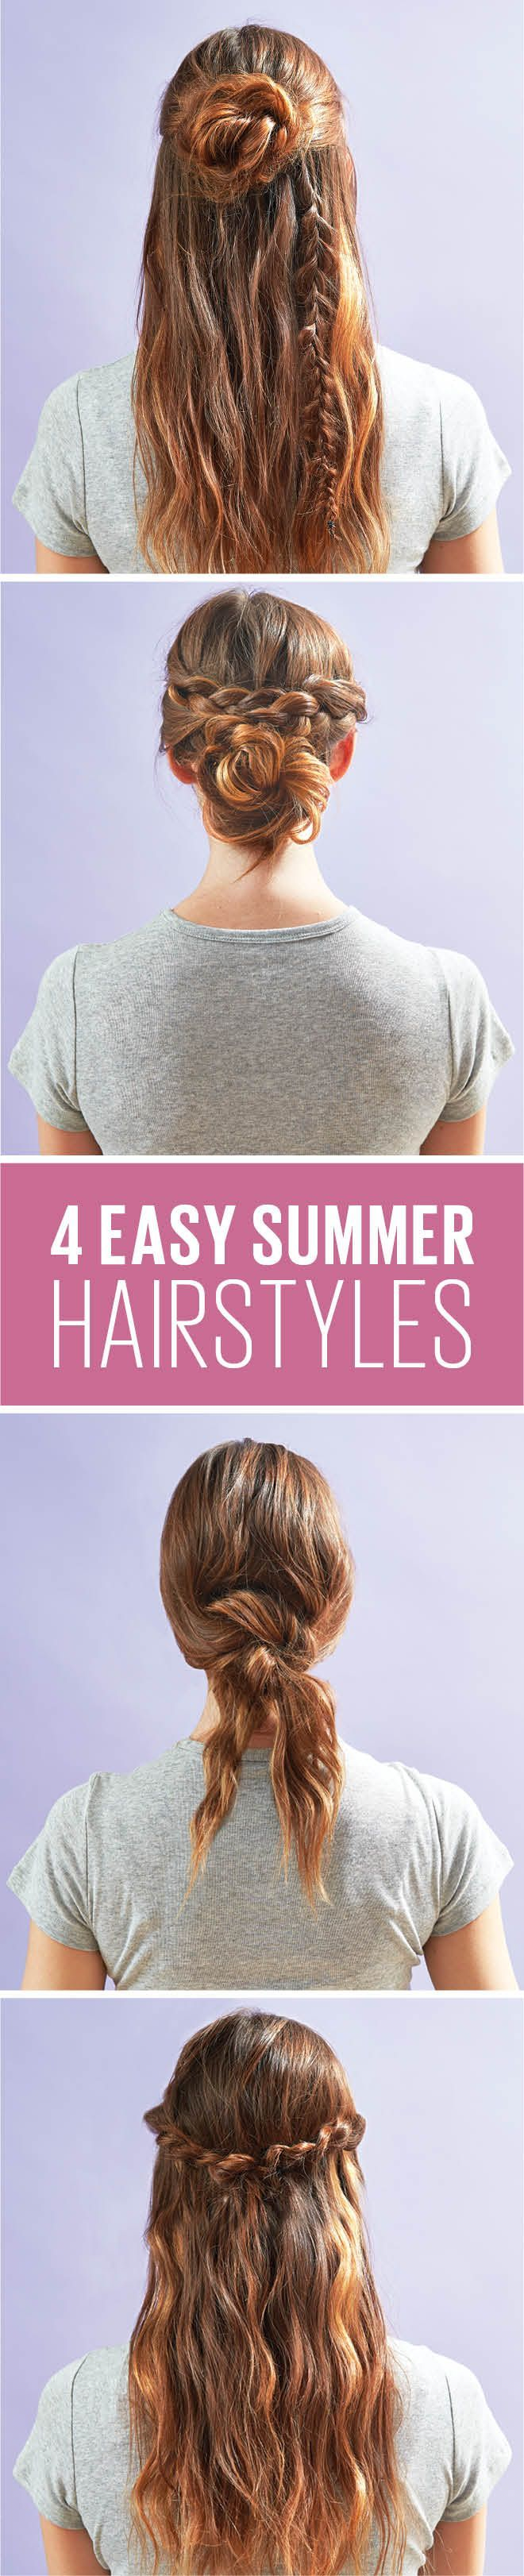 Upgrade your basic pony with these no-fuss looks that will keep you cool without...,   Summer Hairstyles, Upgrade your basic pony with these no-fuss looks that will keep you cool without breaking a sweat. Source by omnikizzy...